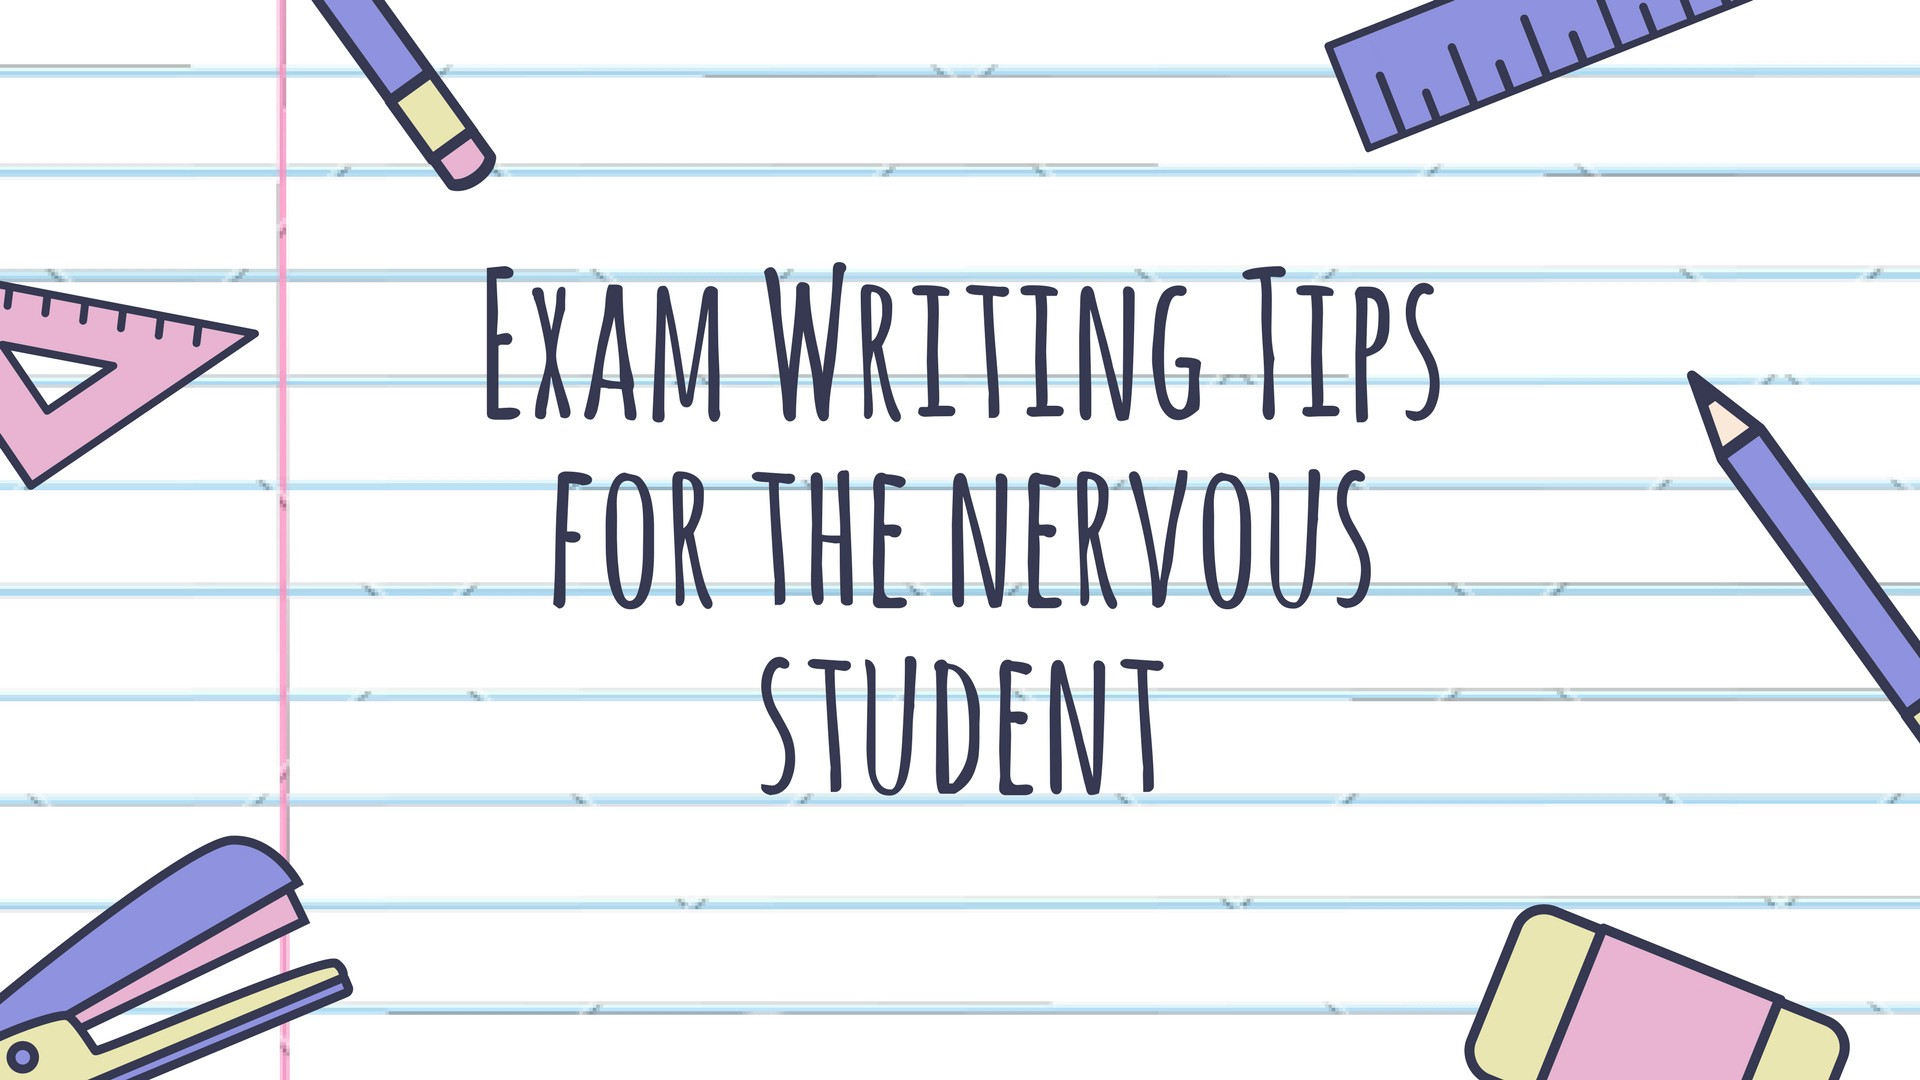 10 Exam Writing Tips for the Nervous Student - YouAlberta